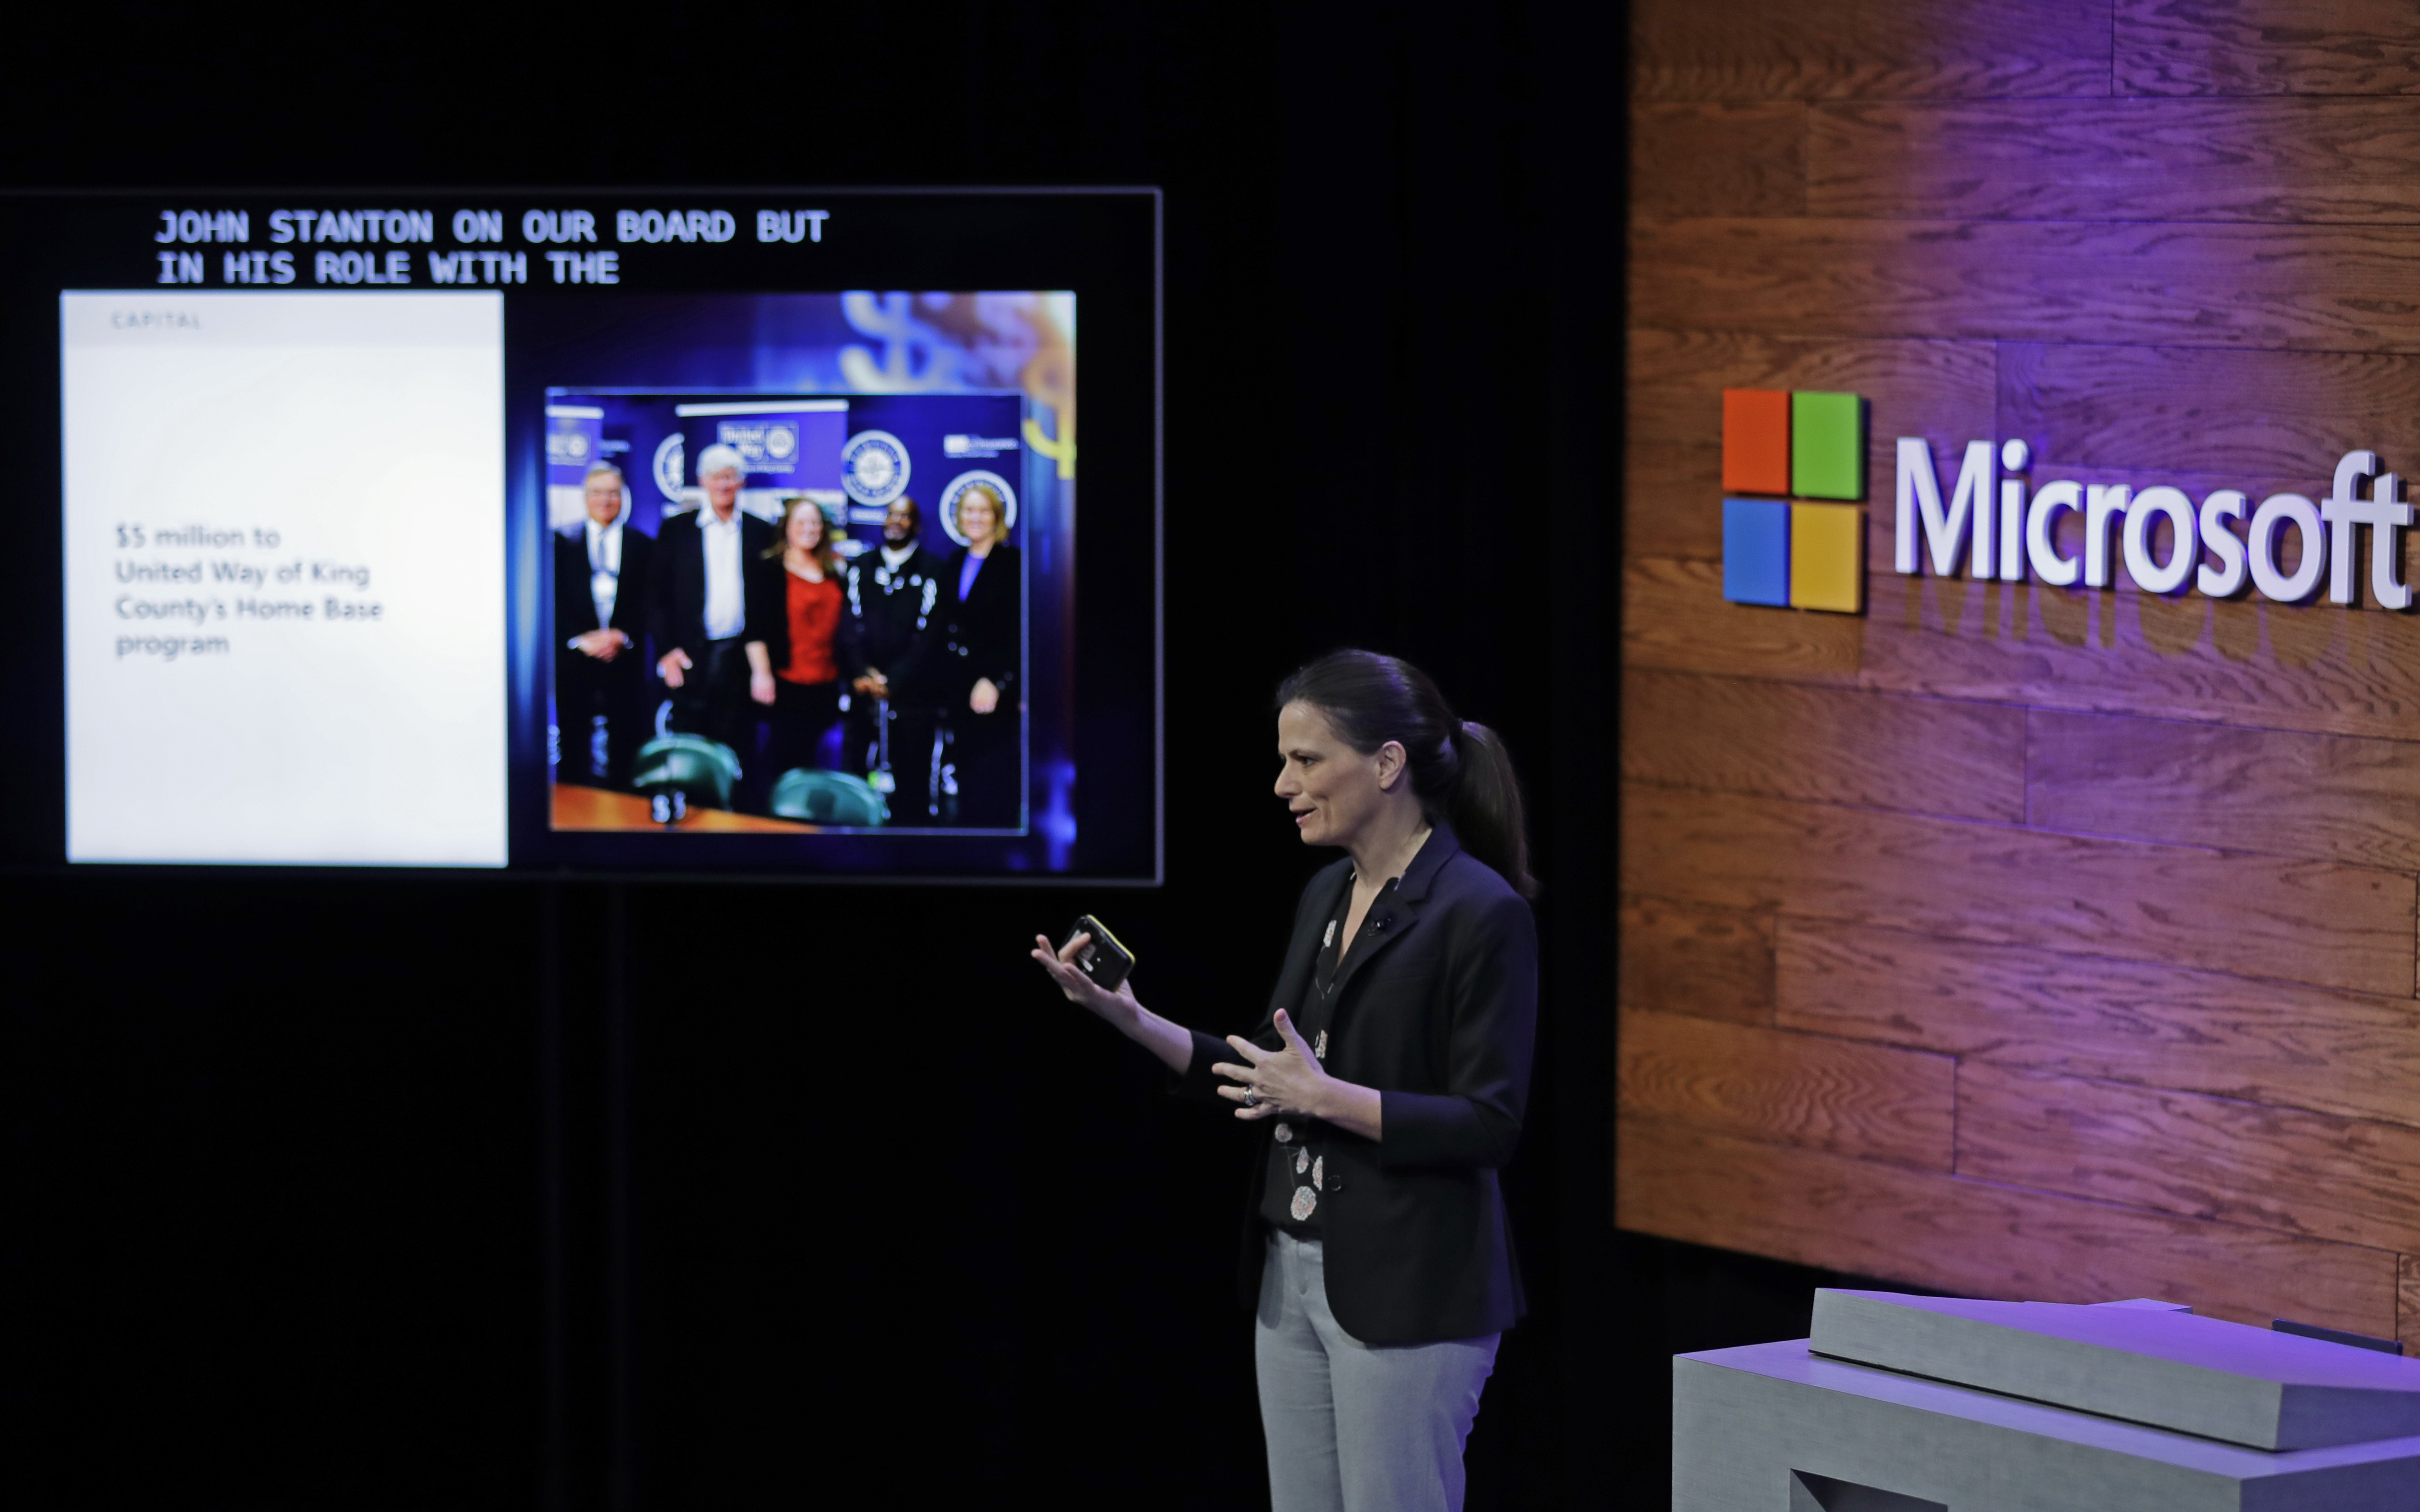 Microsoft Corp. CFO Amy Hood speaks Thursday, Jan. 17, 2019, during a news conference in Bellevue, Wash., to announce a $500 million pledge by Microsoft to develop affordable housing for low- and middle-income workers in response to the Seattle region's widening affordability gap and to also to address homelessness. (AP Photo/Ted S. Warren)